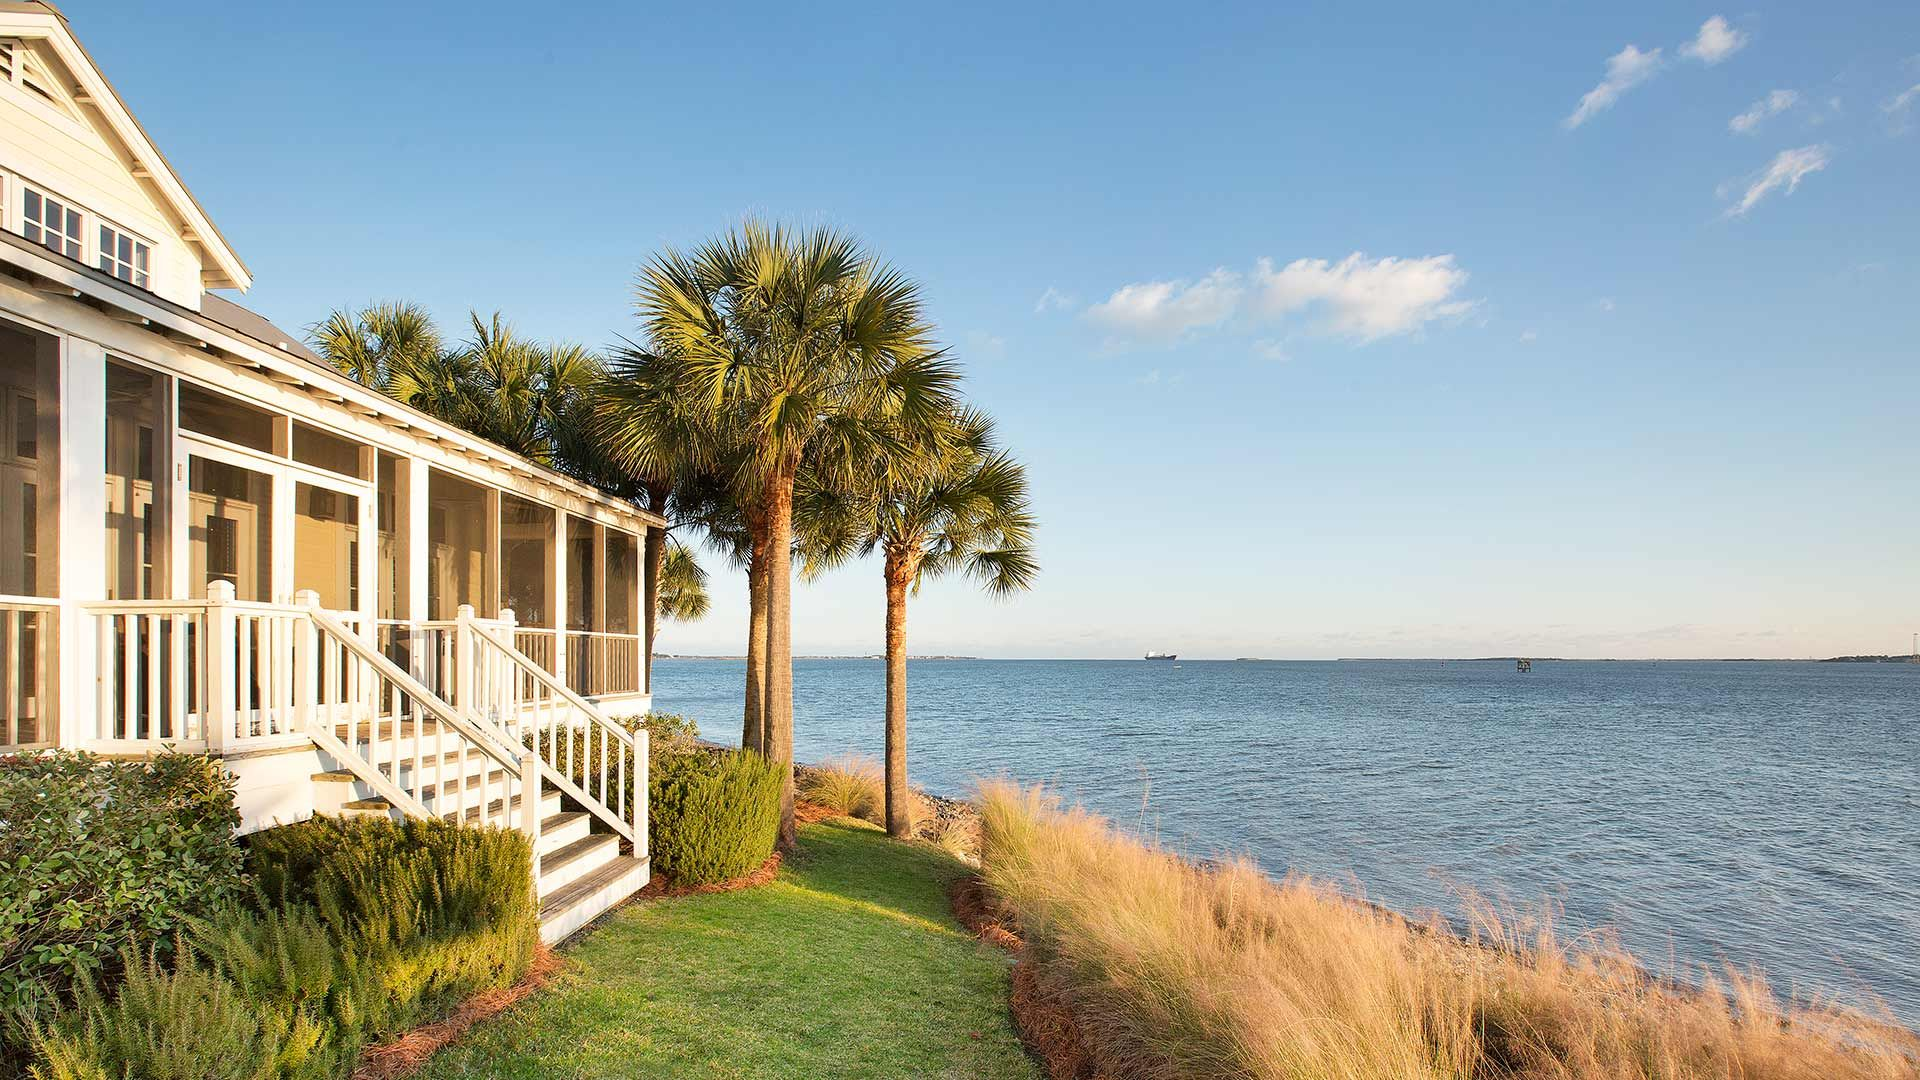 The Cottages On Charleston Harbor Luxury Vacation Rentals Charleston Harbor Vacation Spots Tropical Mount Pleasant South Carolina Beautiful Places To Visit